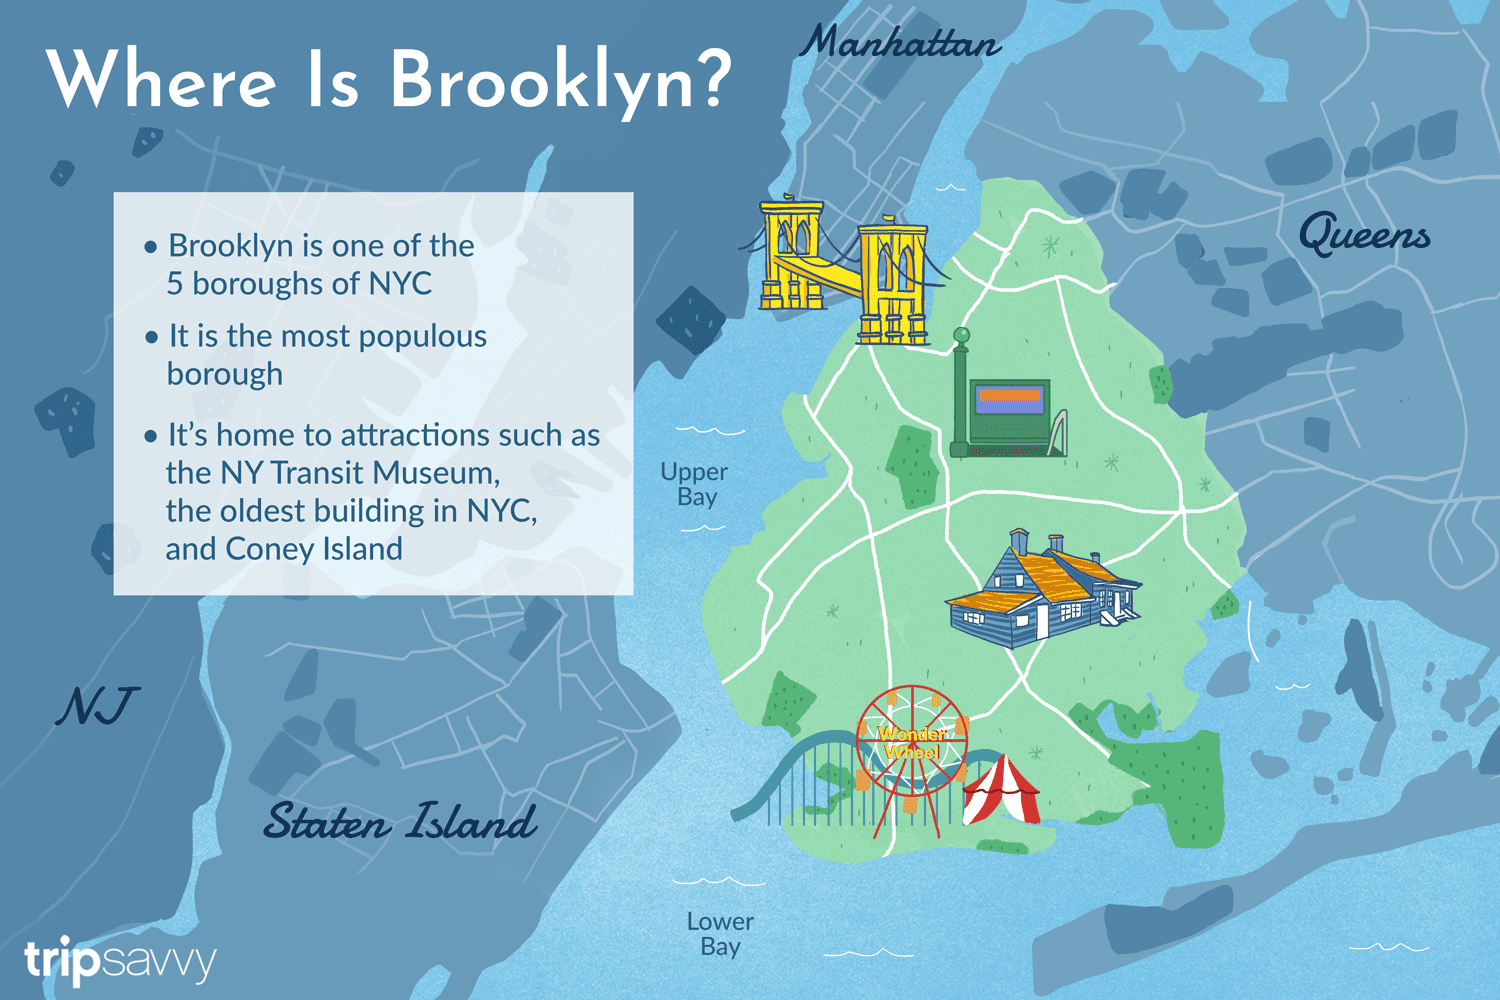 Where Is Brooklyn? In What County and City? on map of brownsville brooklyn ny, map of montreal and surrounding area, map of brooklyn boroughs, map of manhattan, map of ny nj area, map of london districts and boroughs, map of all the states, map of boroughs of new york city, map of london 1600, map of brooklyn housing projects, map of brooklyn neighborhoods ny, map of eastern new jersey, map of central london neighborhoods, map of brooklyn nycha, map of london boroughs and towns, map of nyc housing authority developments, map of new york city boroughs and bridges, map of the five boroughs of new york, map of central park nyc, map of harlem,